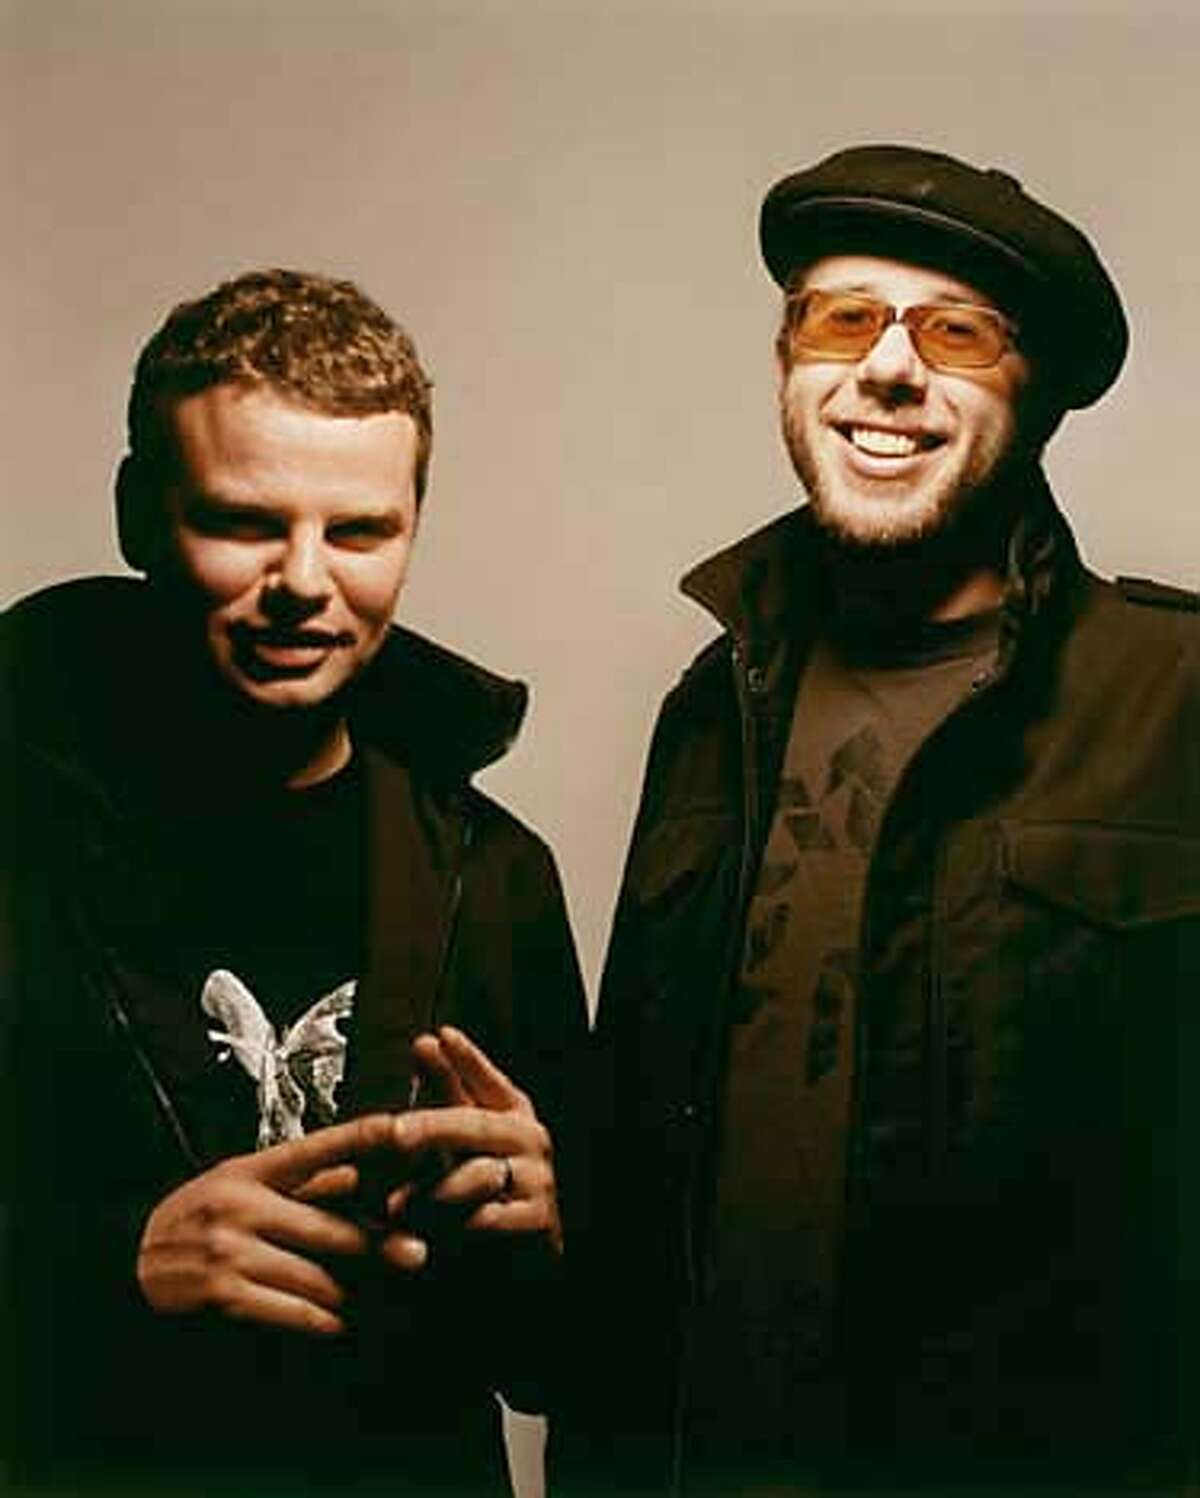 Ed Simons and Tom Rowlands: The Chemical Brothers